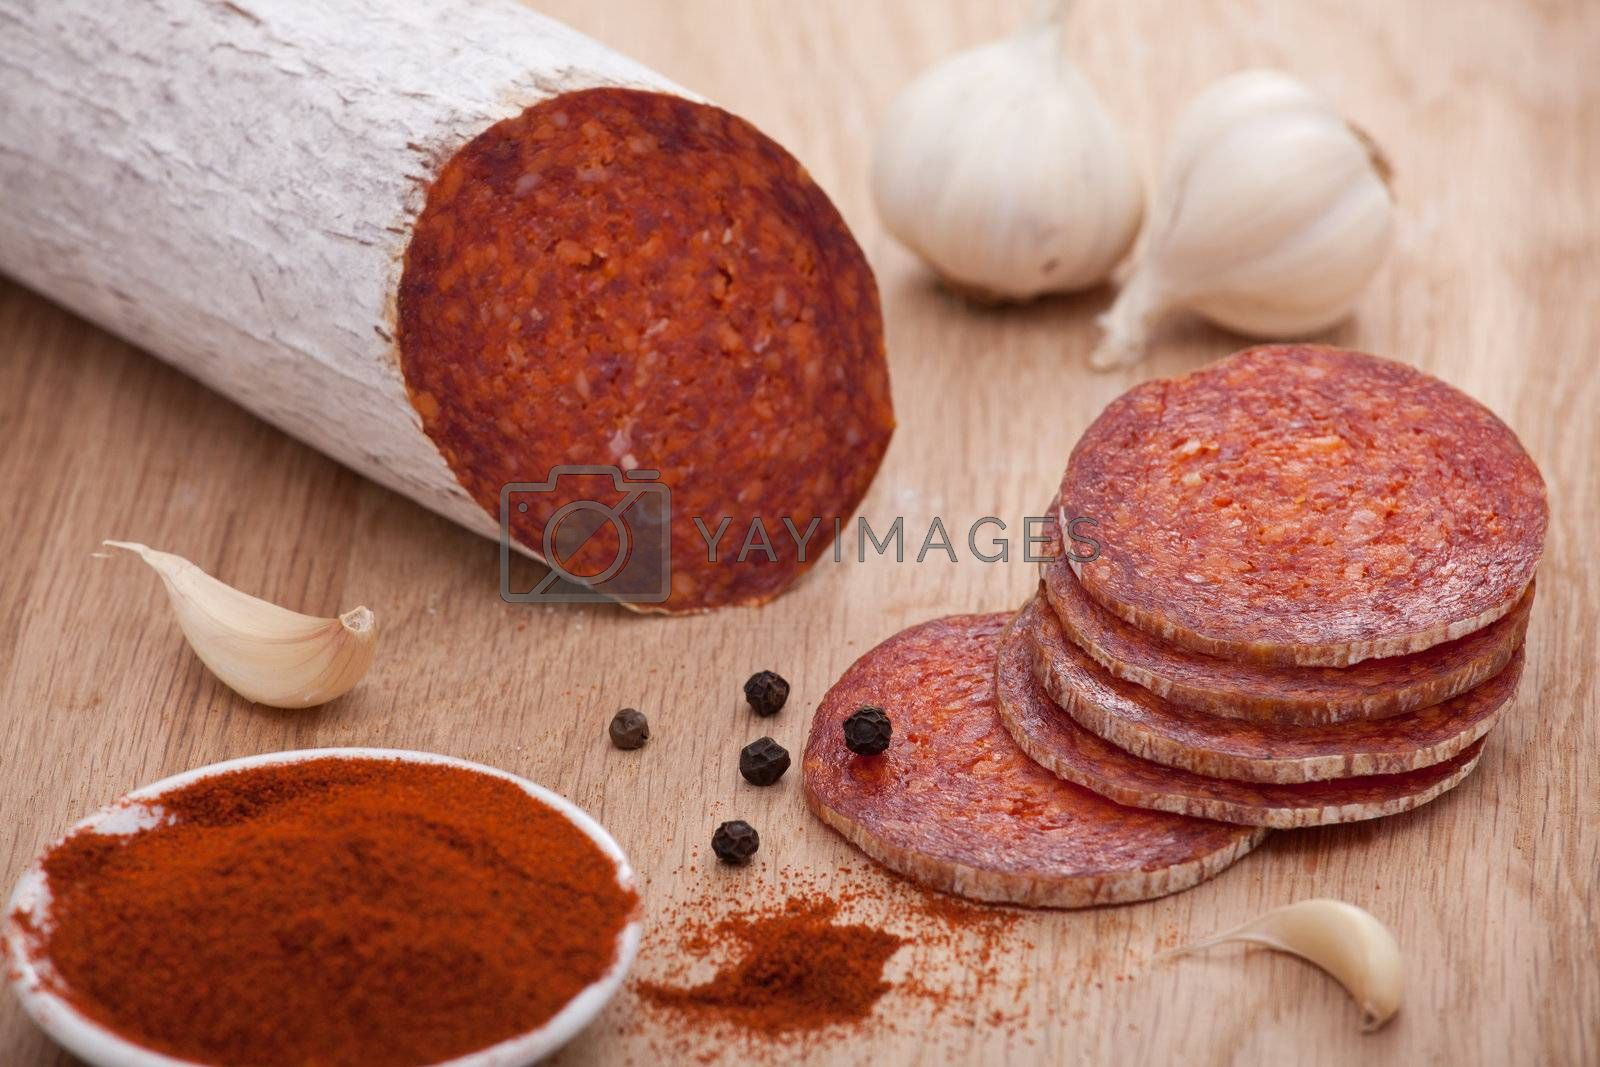 Traditional Hungarian speciality sliced sausage salami on wooden board with garlic, corns of black pepper and bowl with milled paprika spice